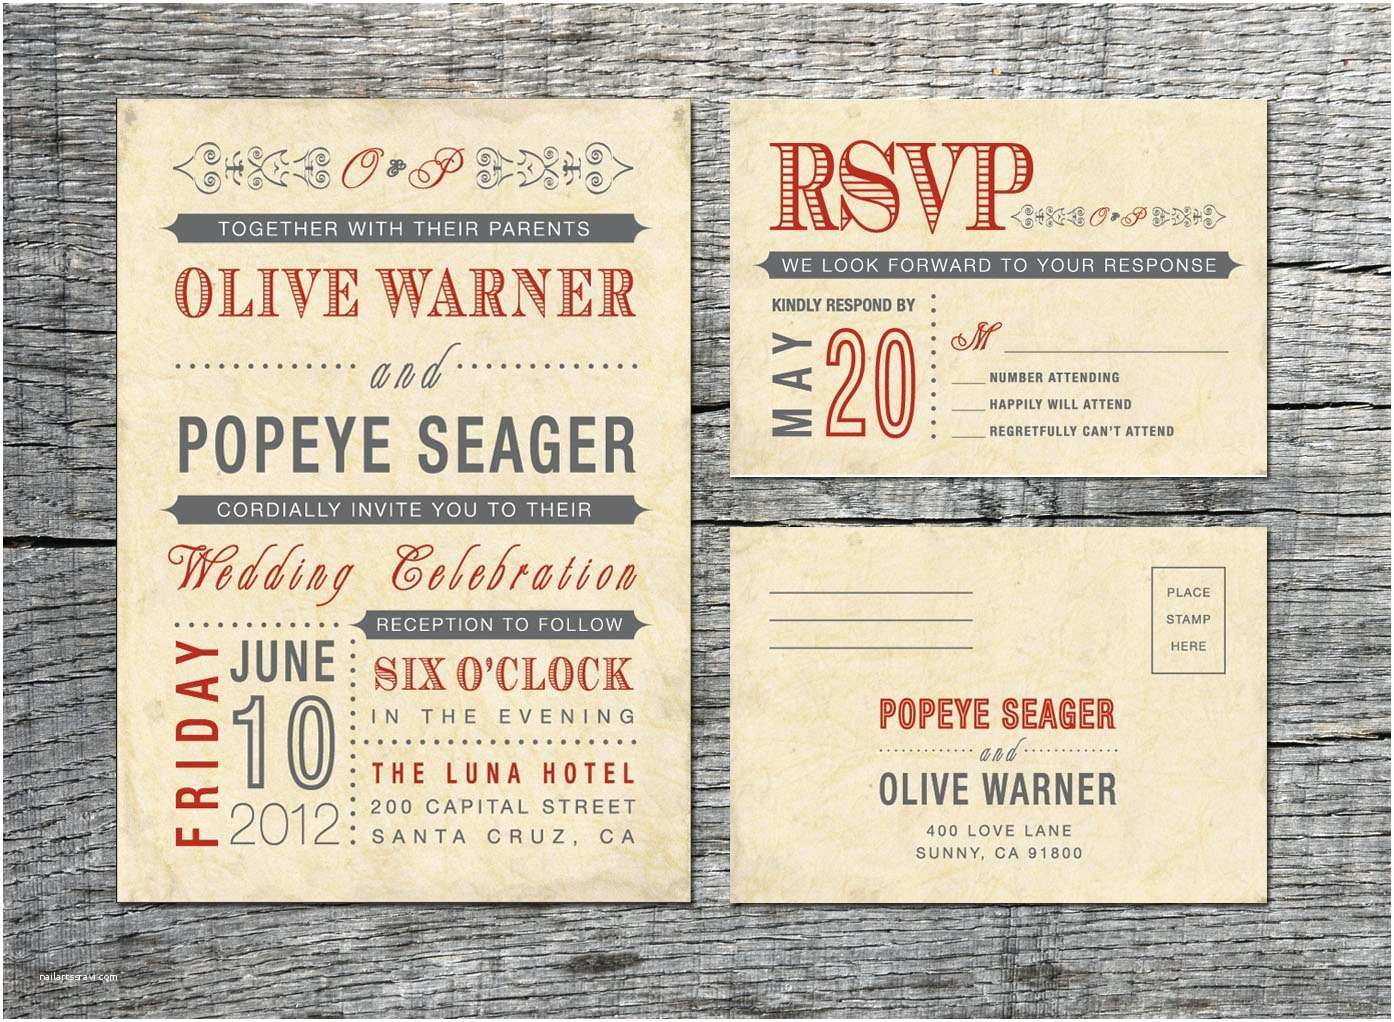 How to Rsvp for Wedding Invitation Vintage Wedding Invitation & Rsvp Card Old by